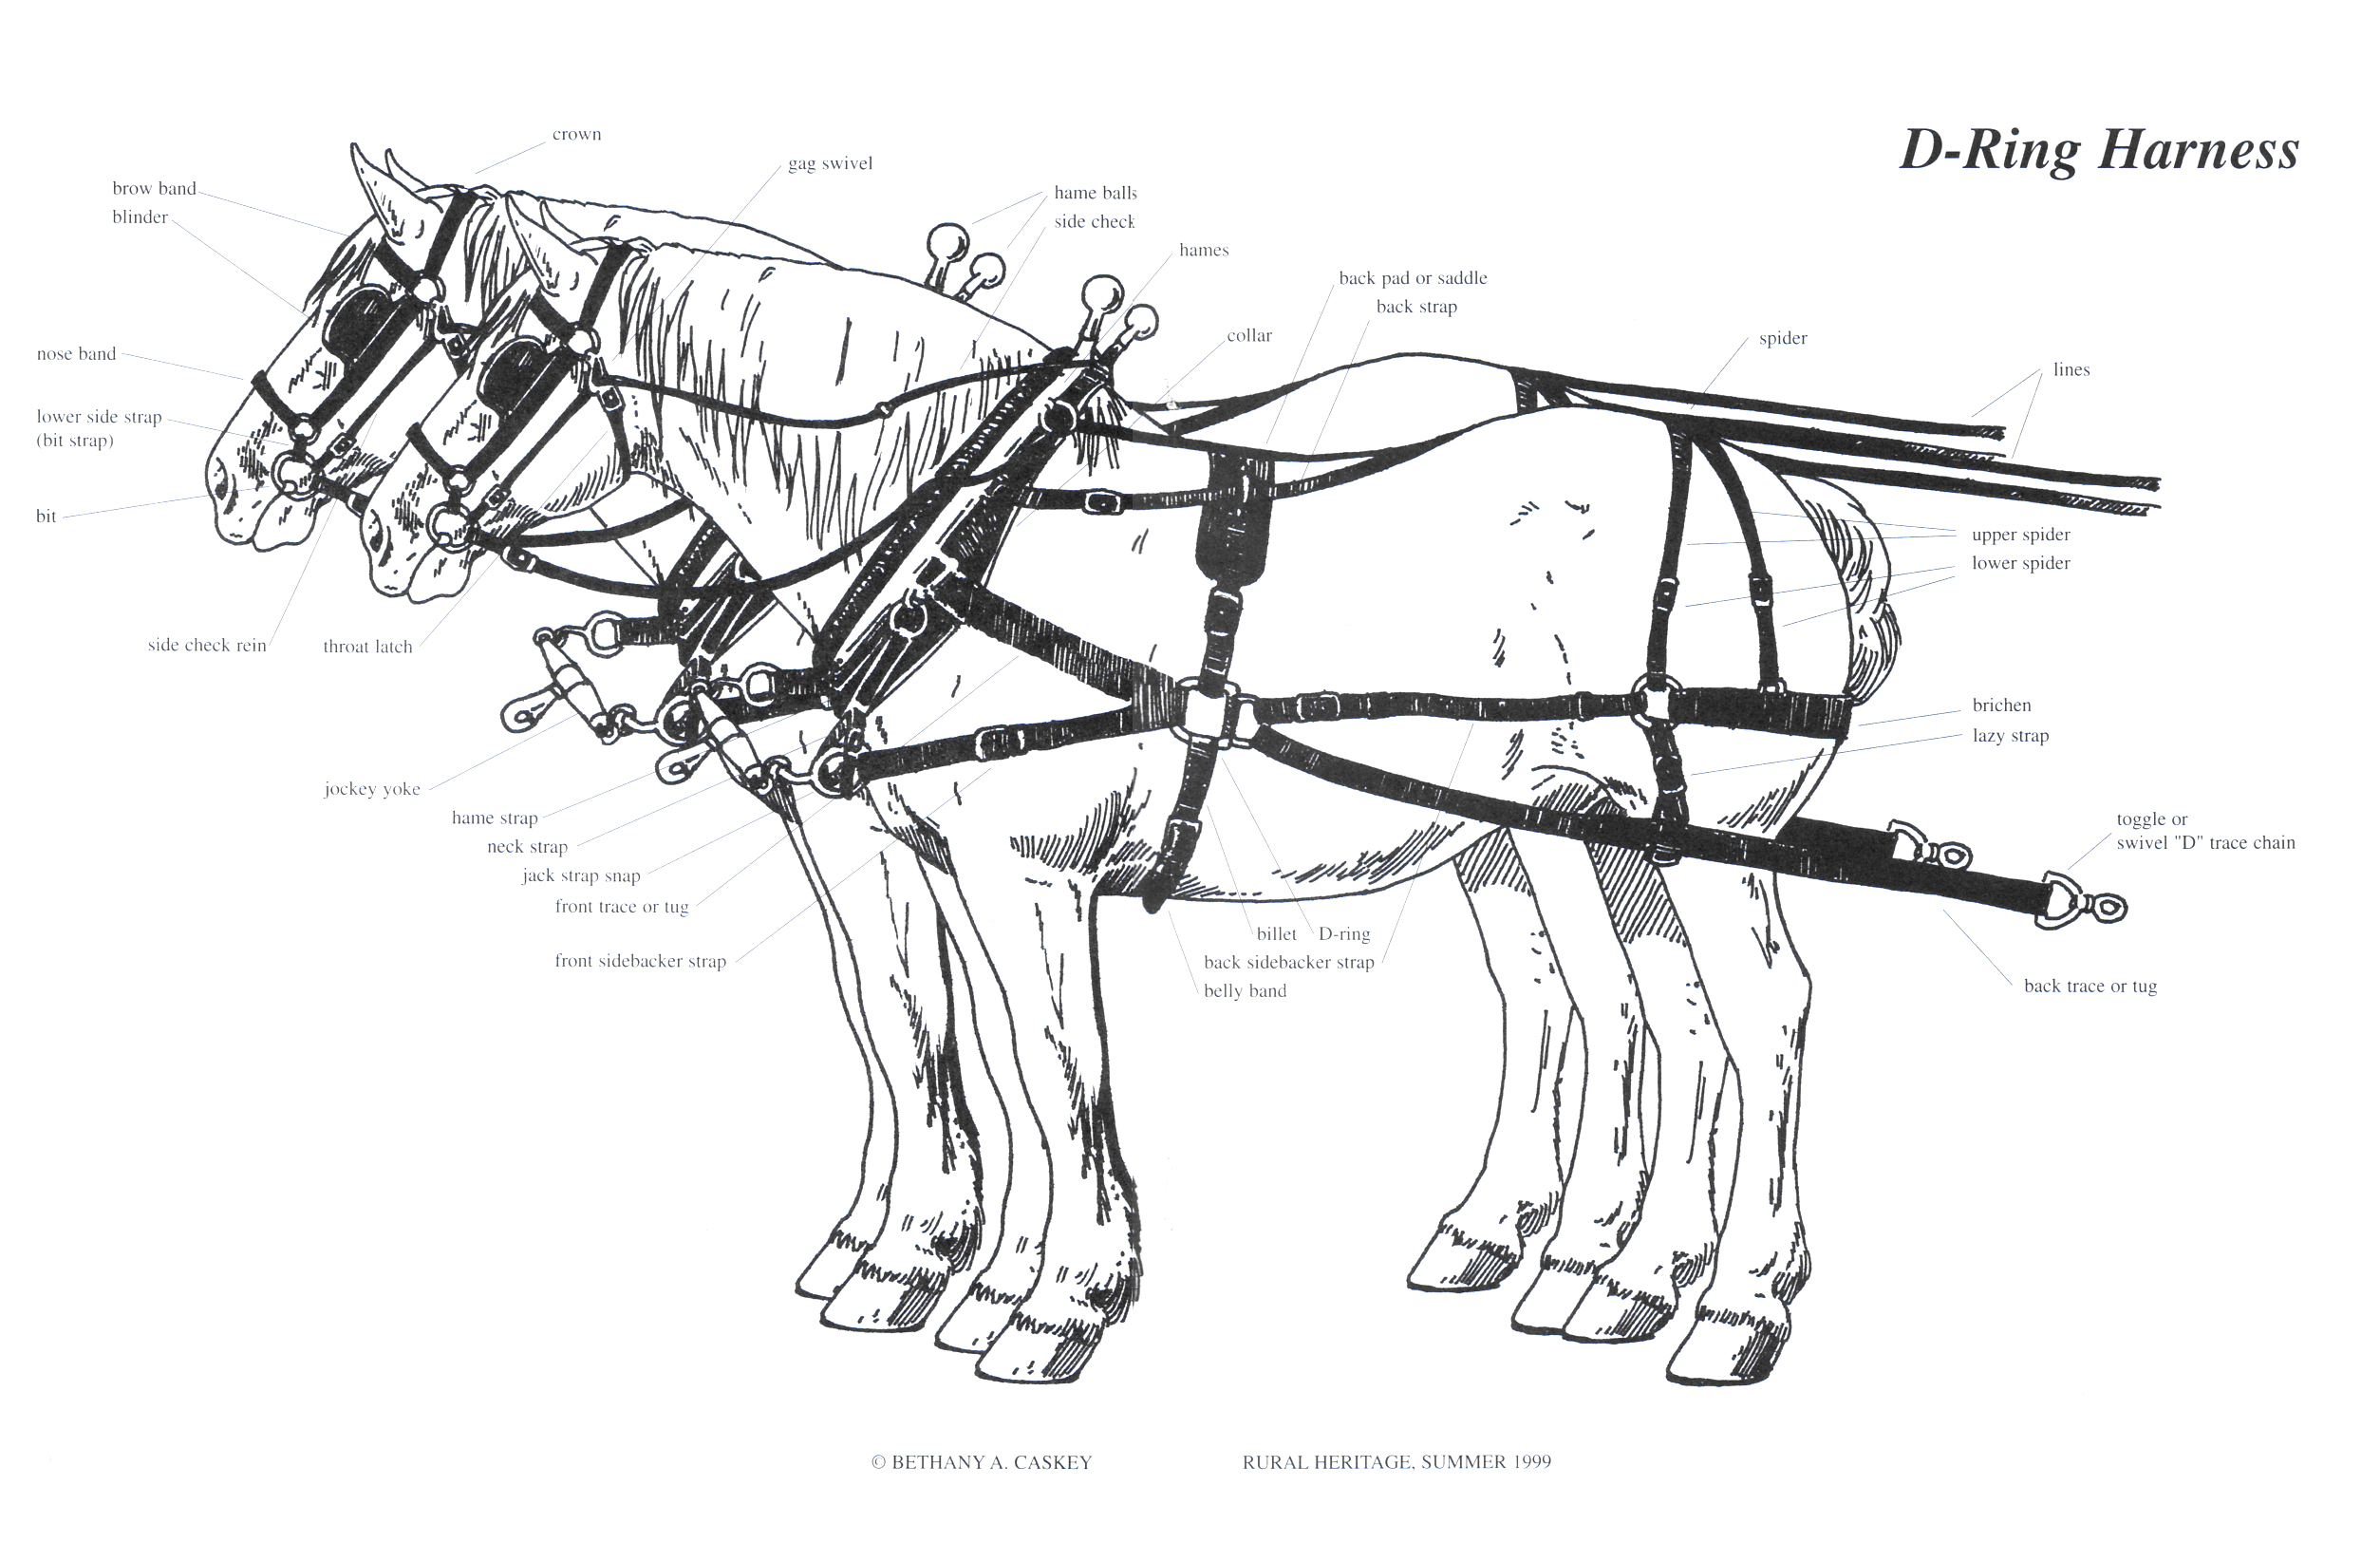 d-ring harness illustrations